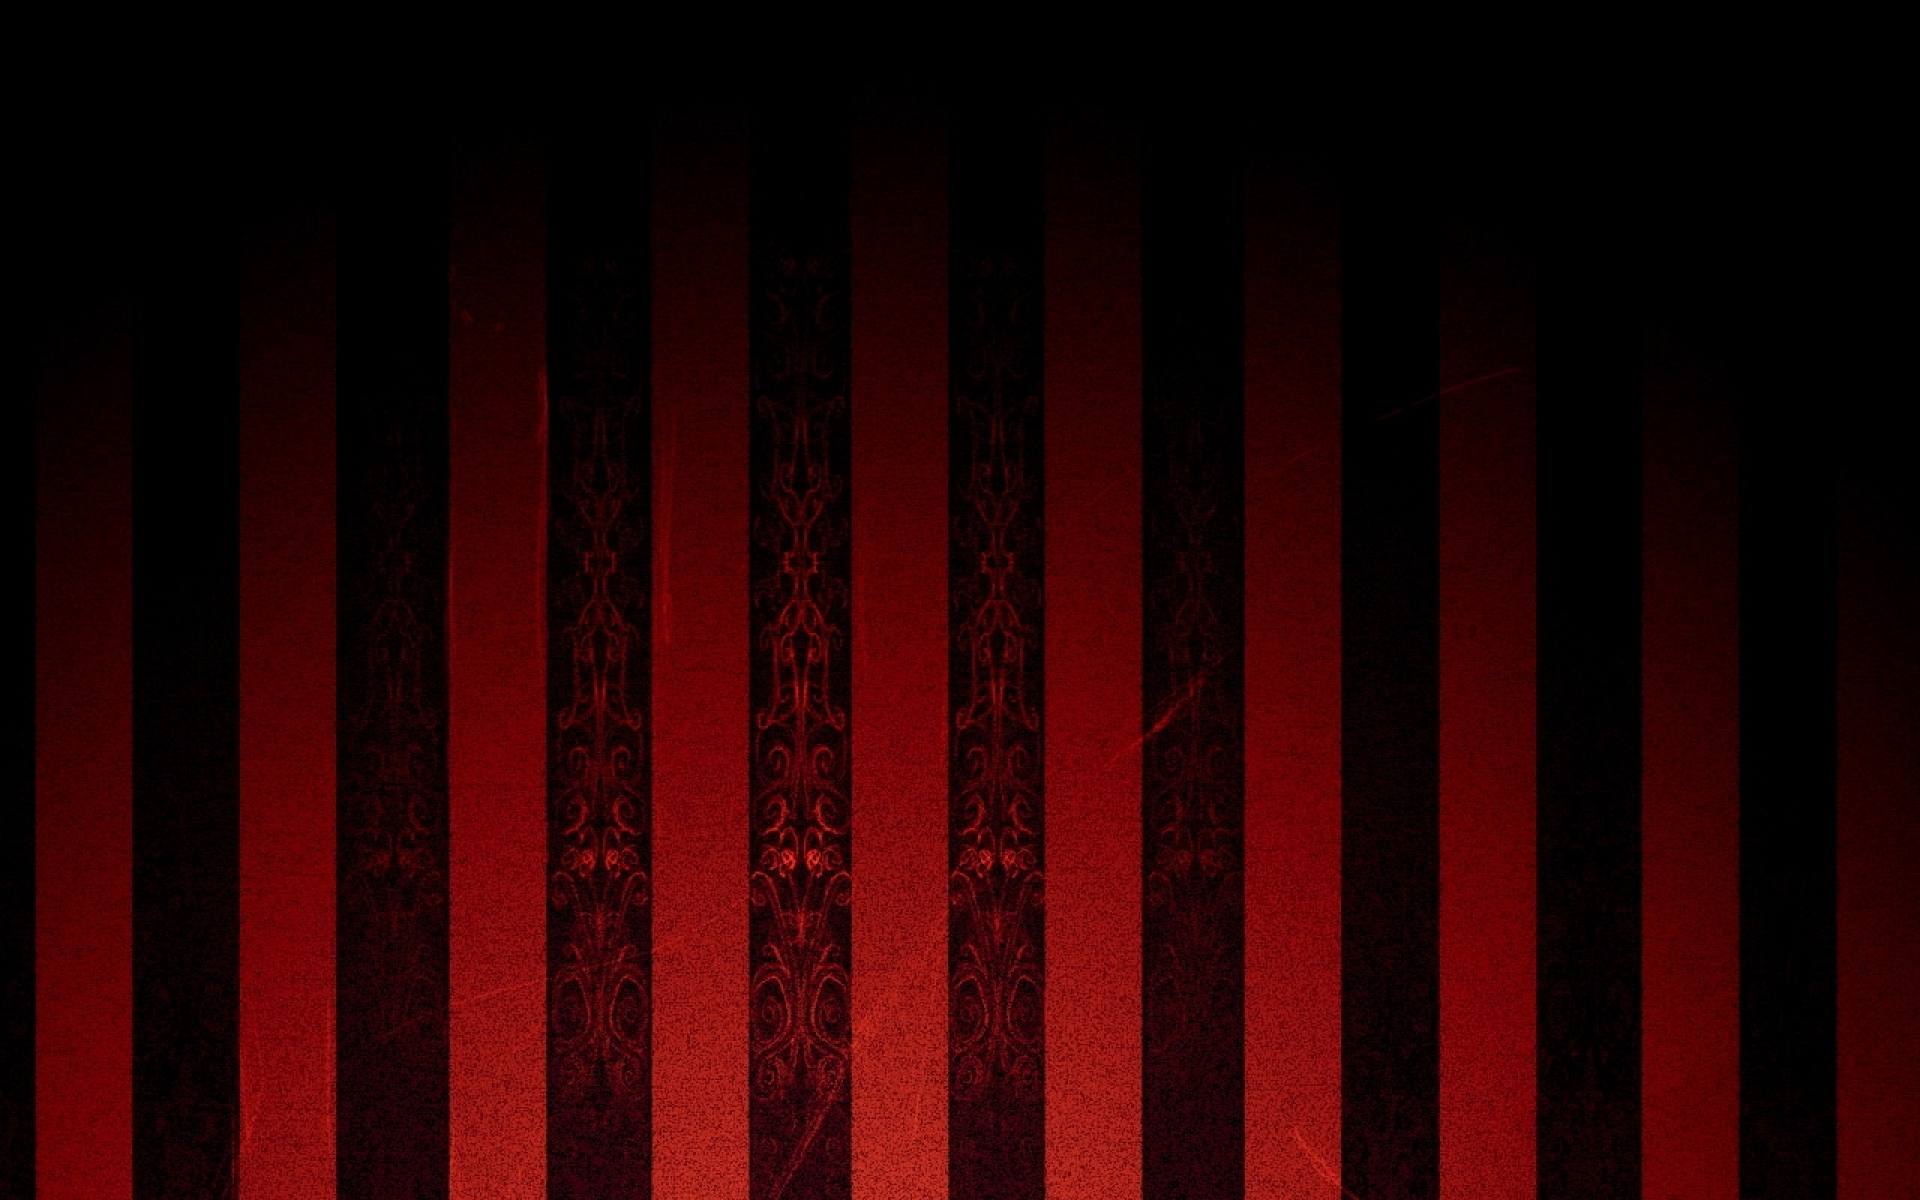 13 awesome black and red wallpapers hd the nology 13 awesome black and red wallpapers hd